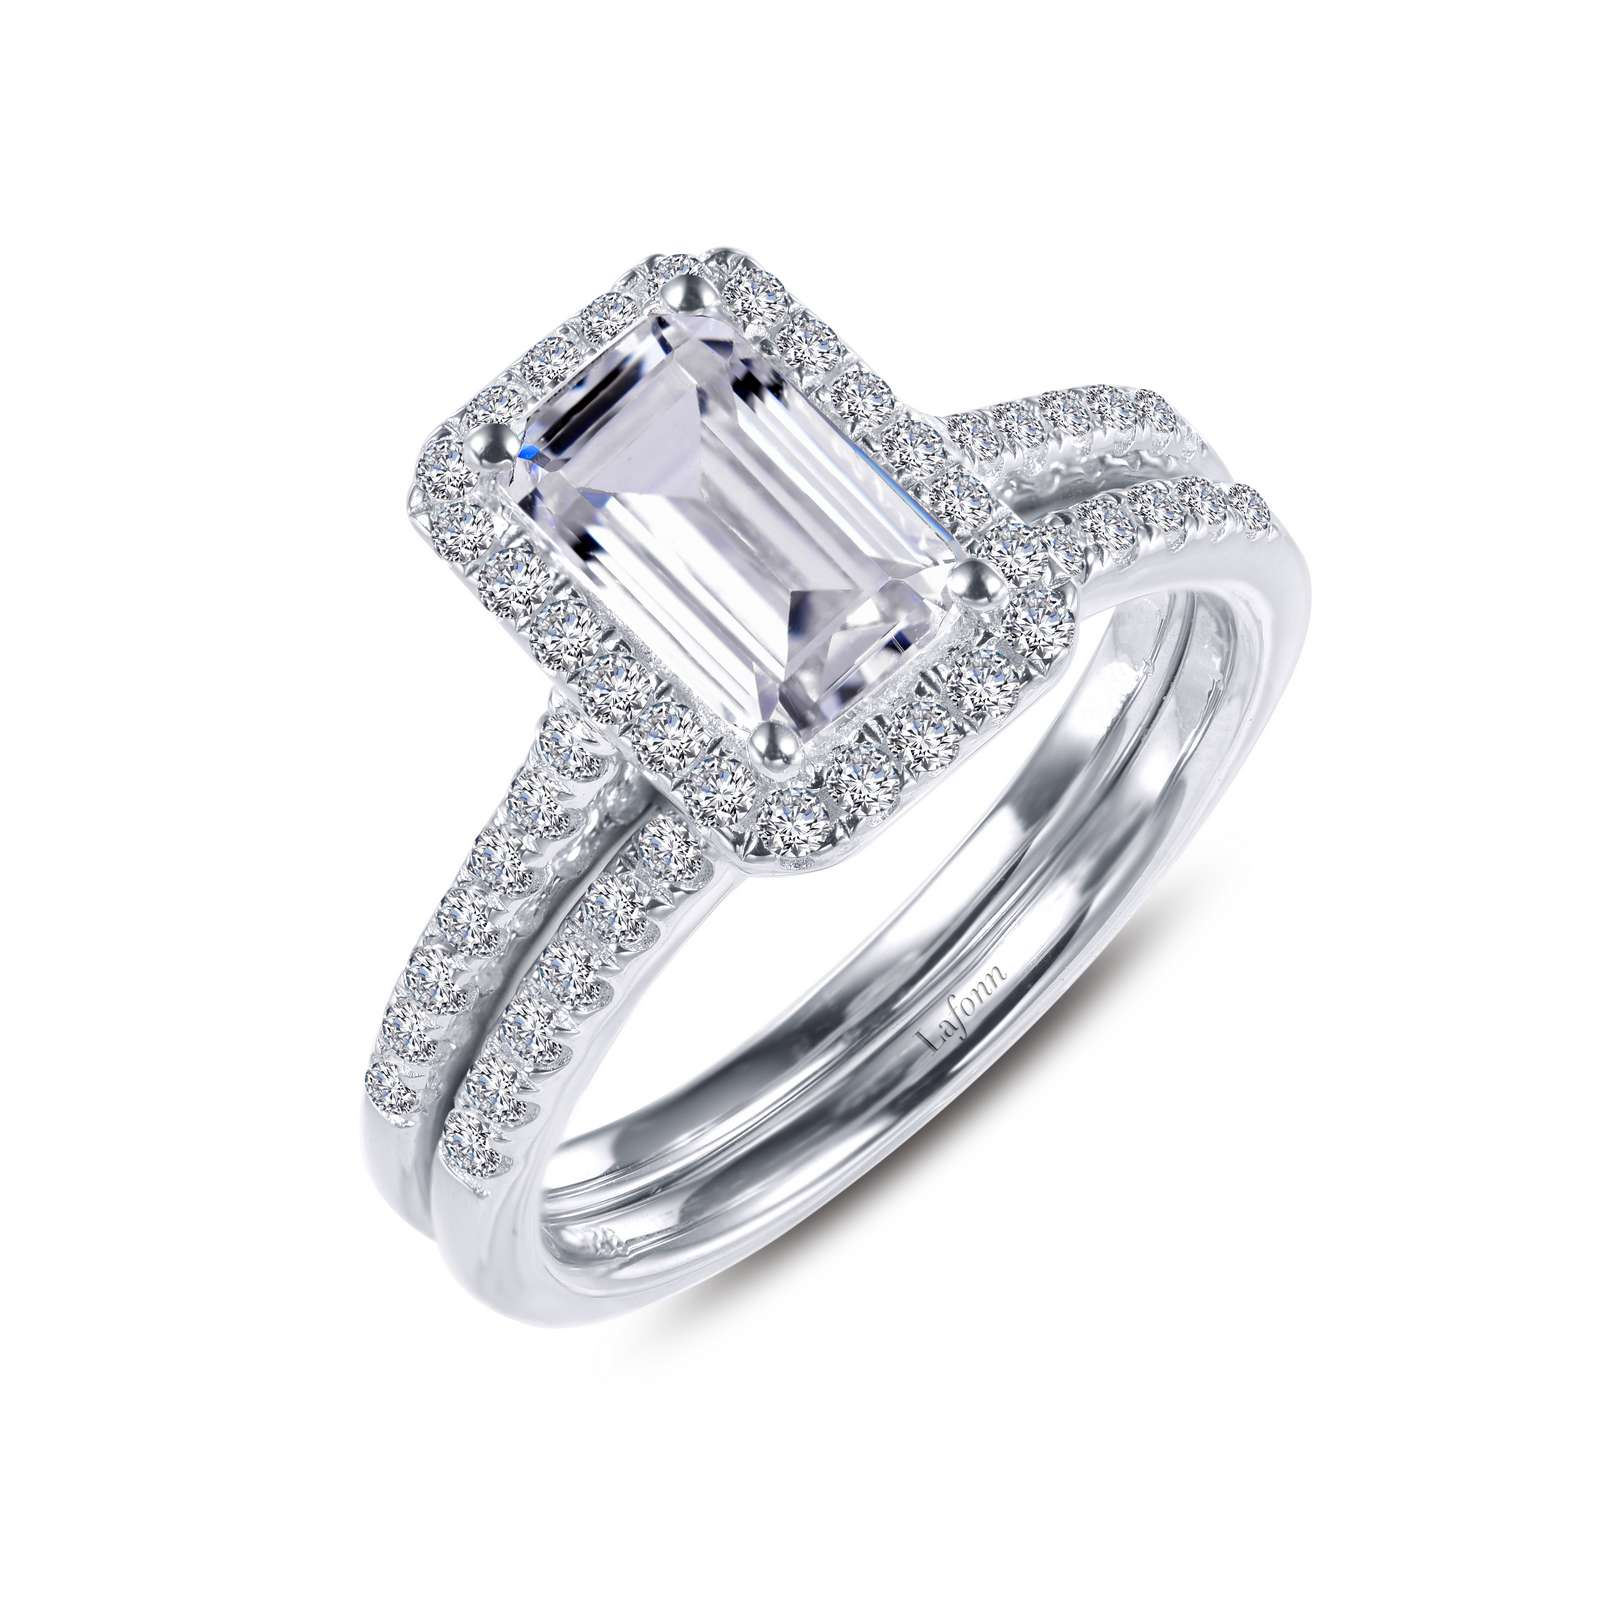 Classic Simulated Diamond Platinum Ring - A timeless classic emerald-cut halo engagement ring with matching band. This wedding set is set with Lafonn's signature Lassaire simulated diamonds in sterling silver bonded with platinum.